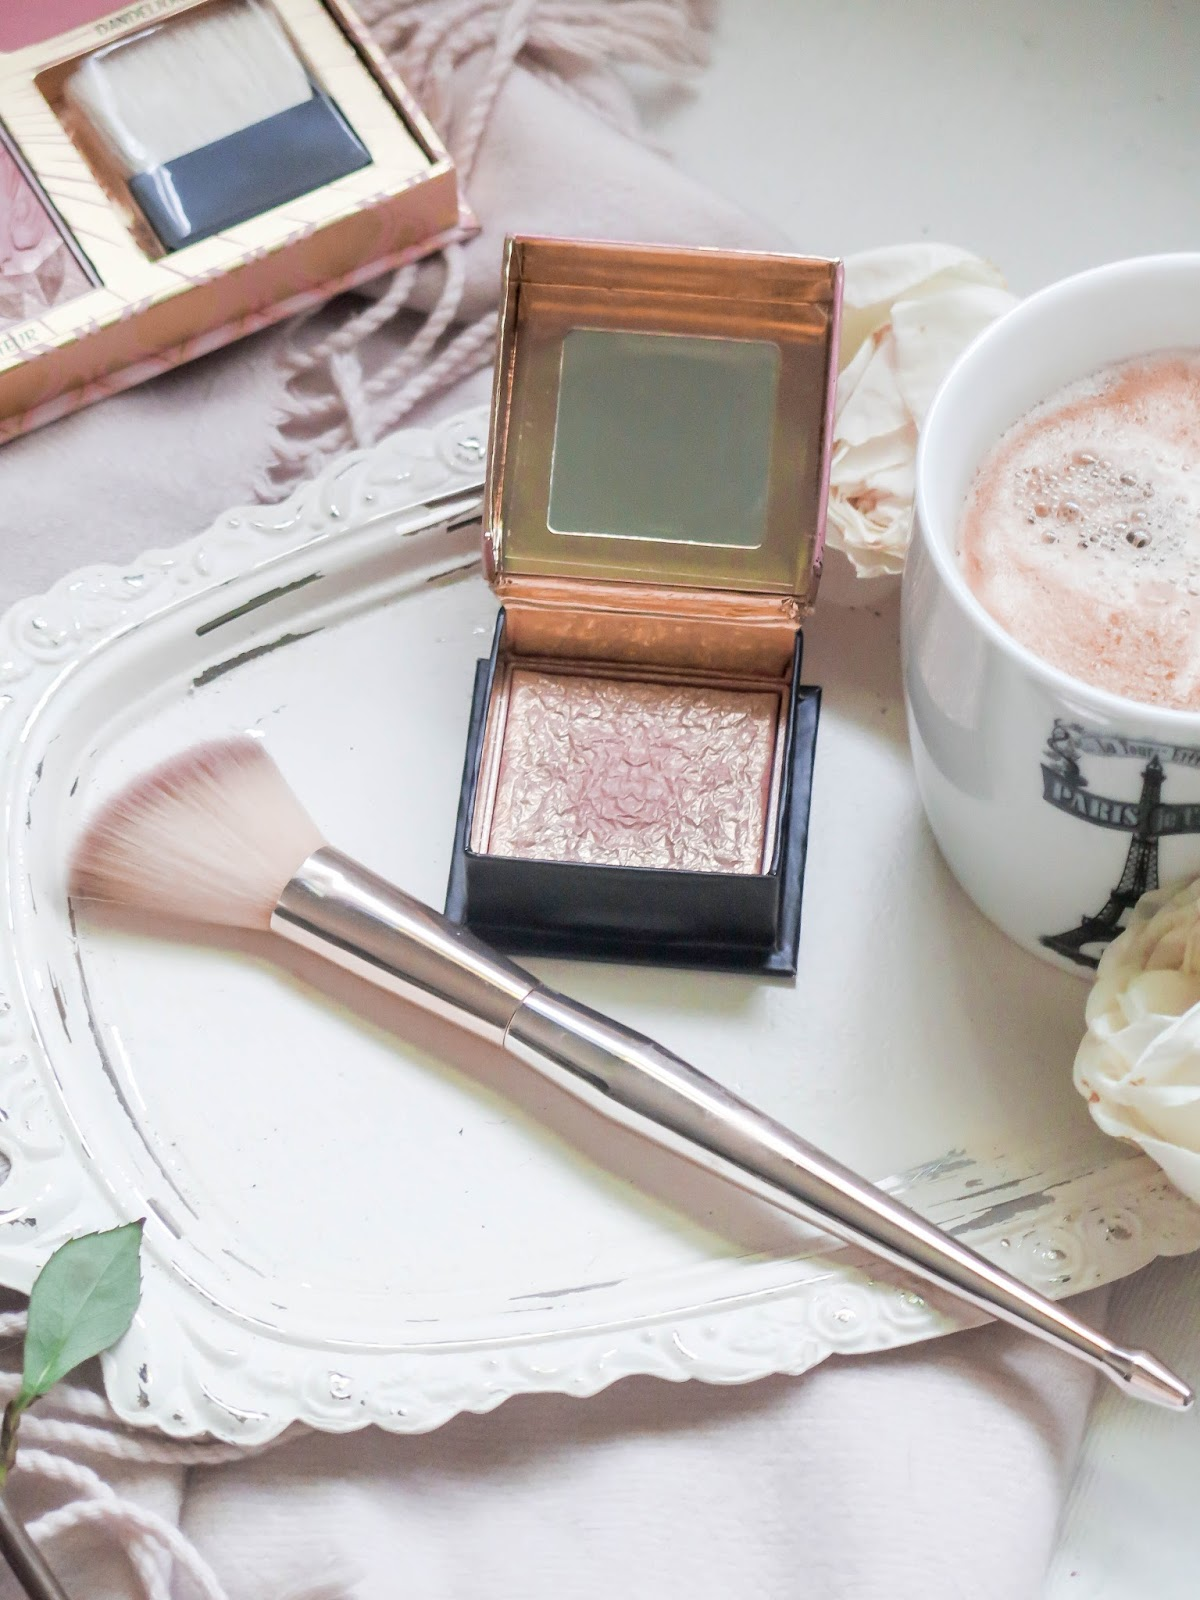 Peachy Sheen - My Favourite Spring Ready Blushes From Benefit | Benefit Cosmetics' NEW Blush Bar Palette & Gold Rush Boxed Blush | Review | labellesirene.ca